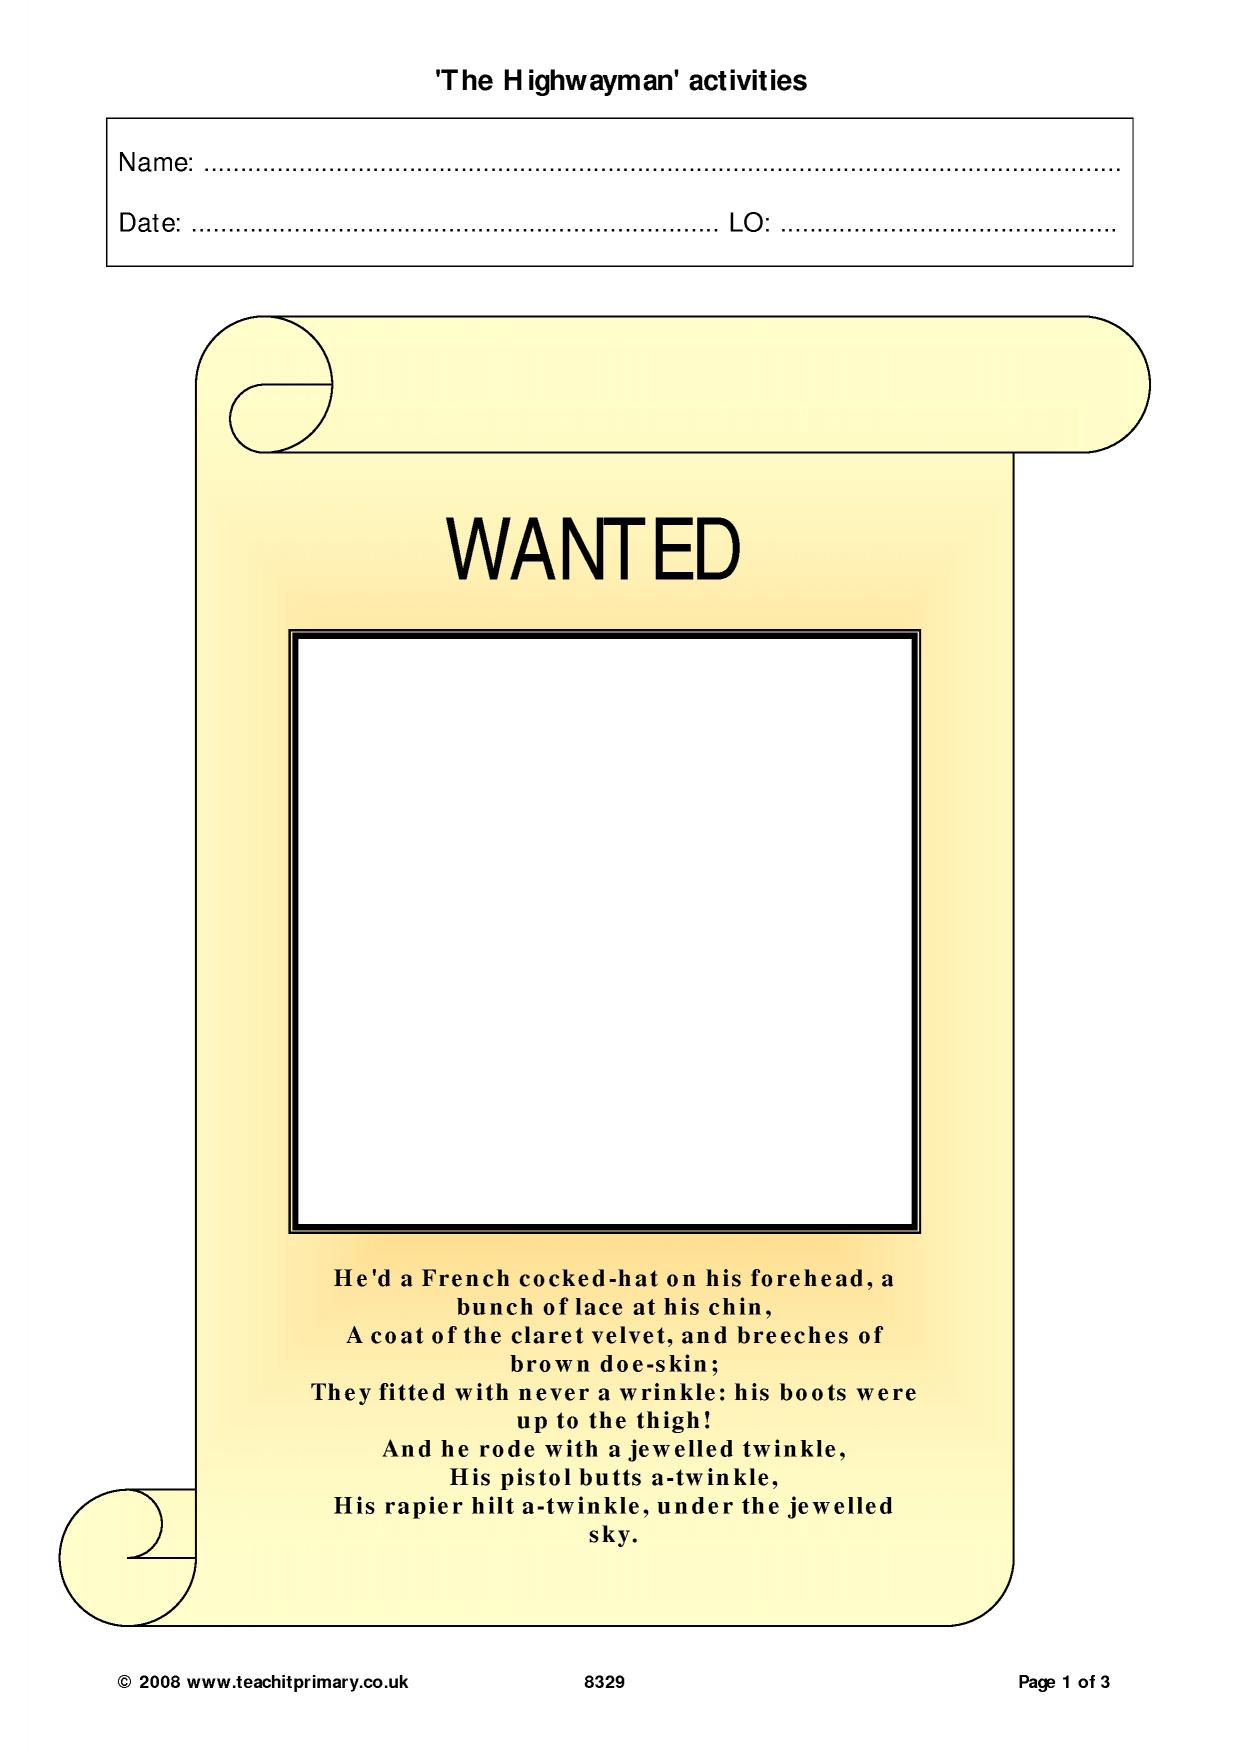 worksheet The Highwayman Worksheet the highwayman activities poem based resources home page resource thumbnail